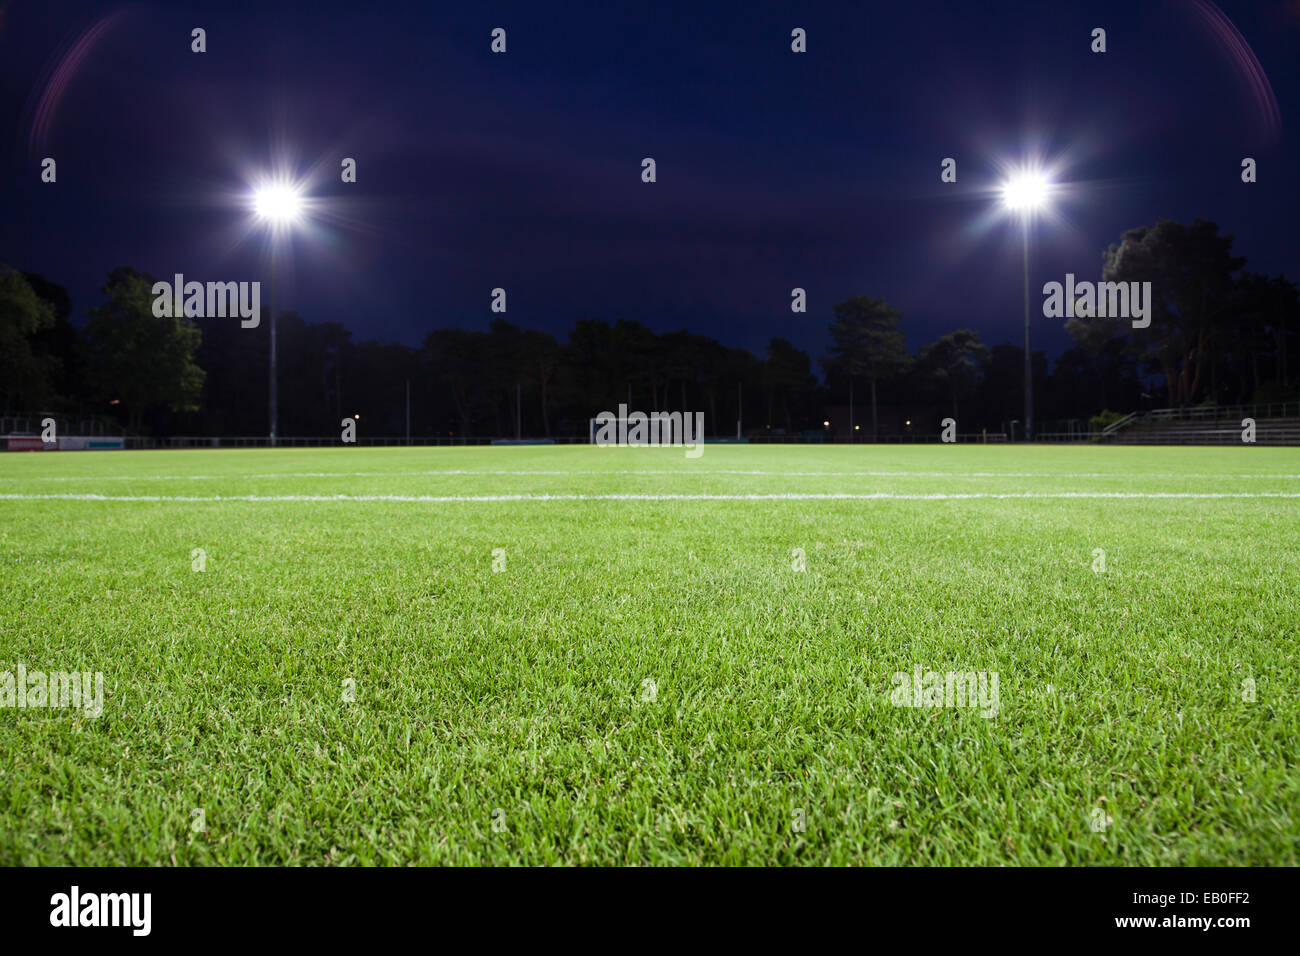 soccer field with spot lights (background) - Stock Image